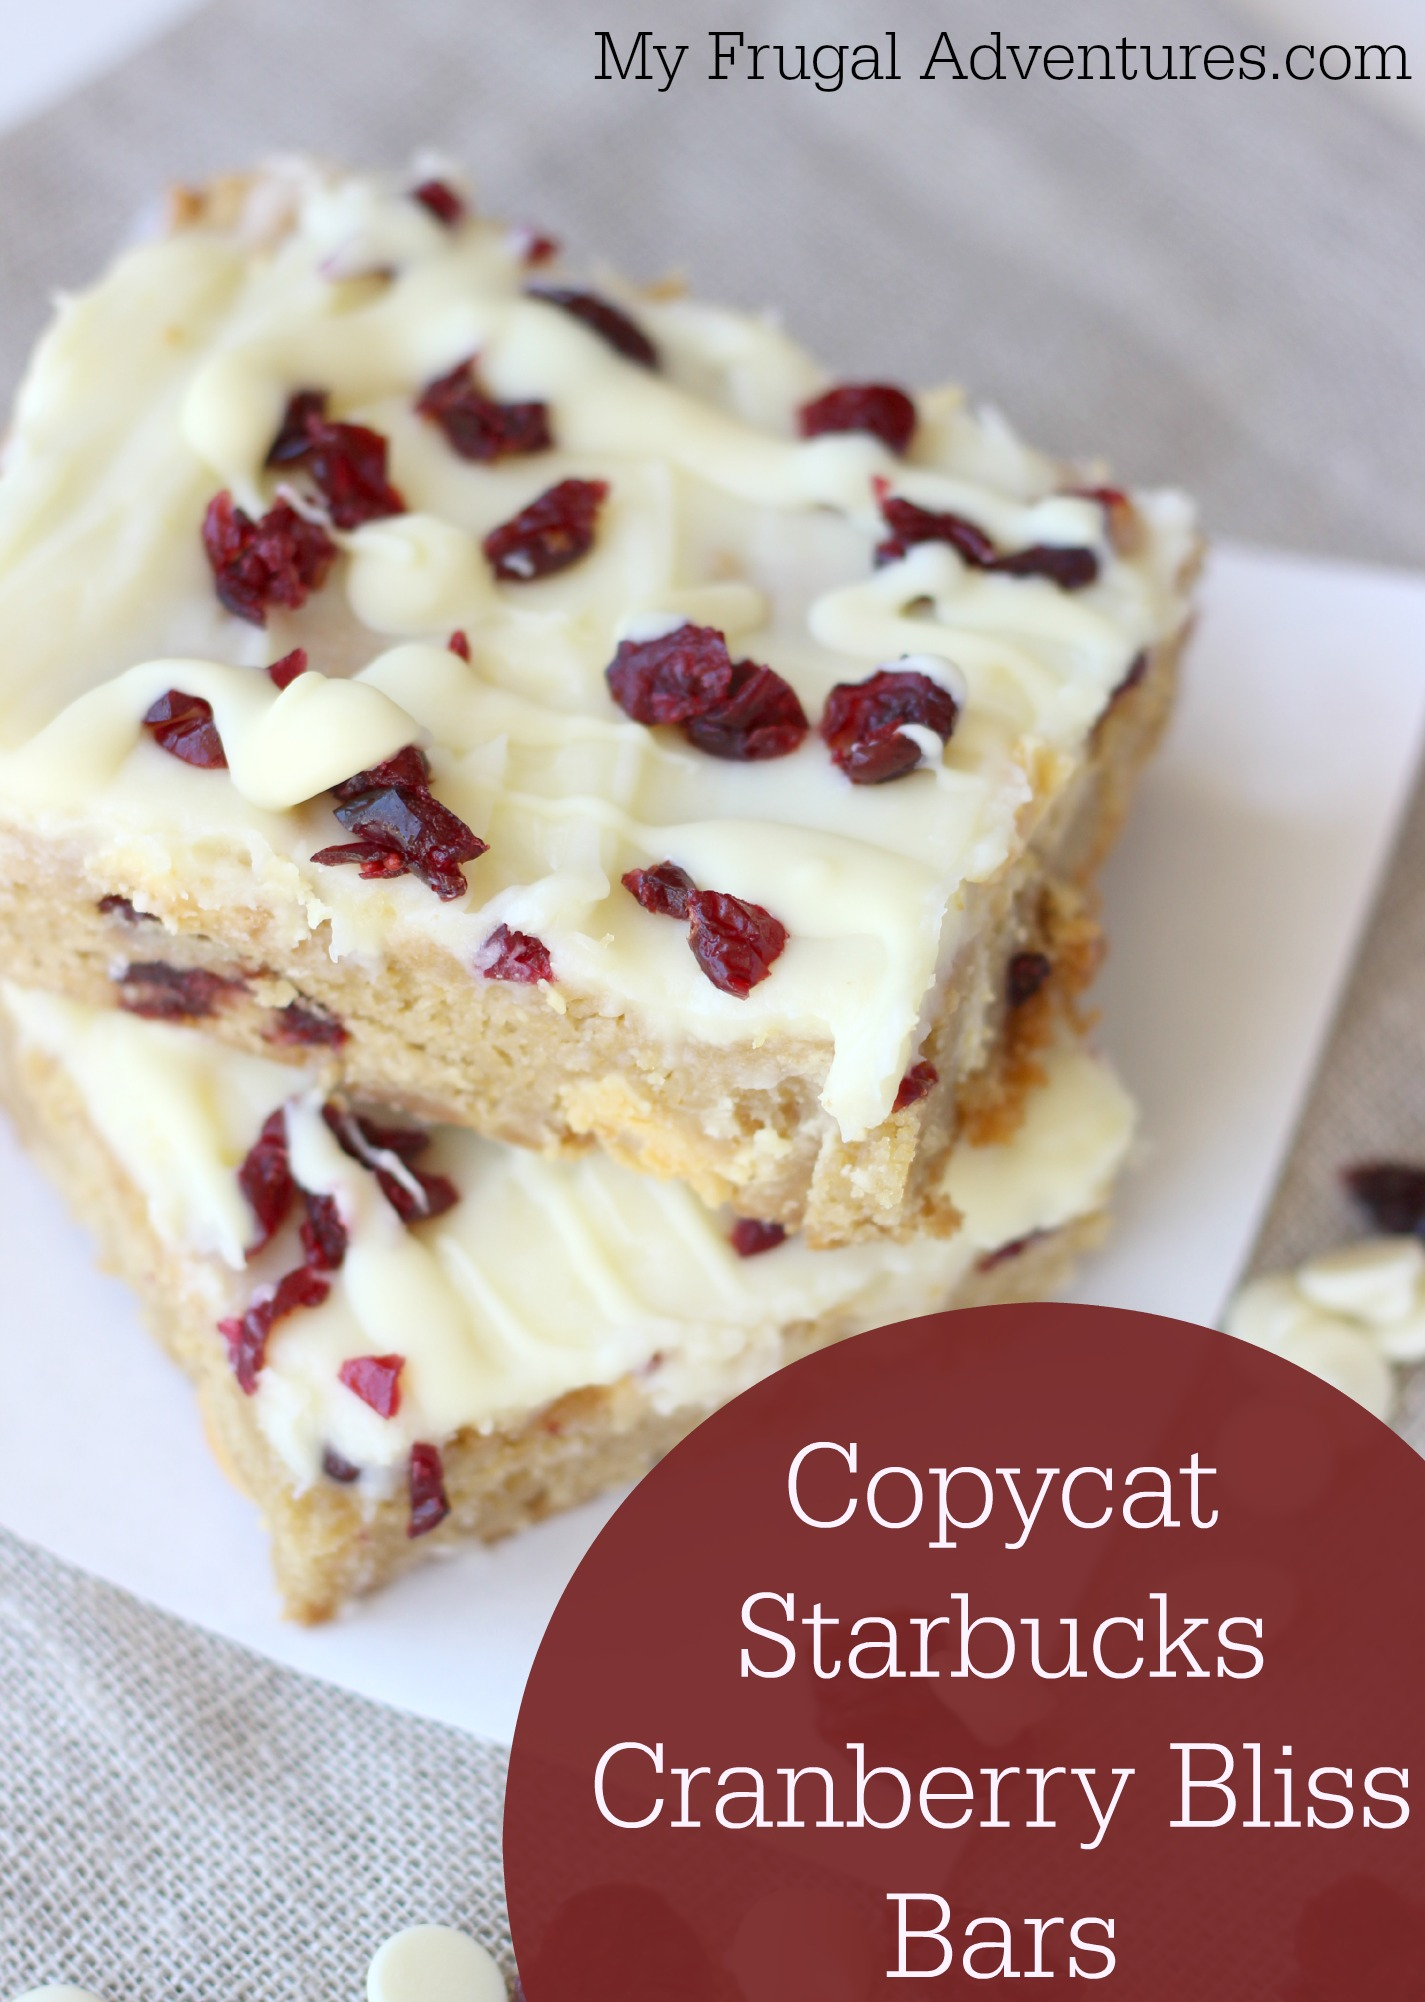 Copycat Starbucks Cranberry Bliss Bars Recipe - My Frugal Adventures